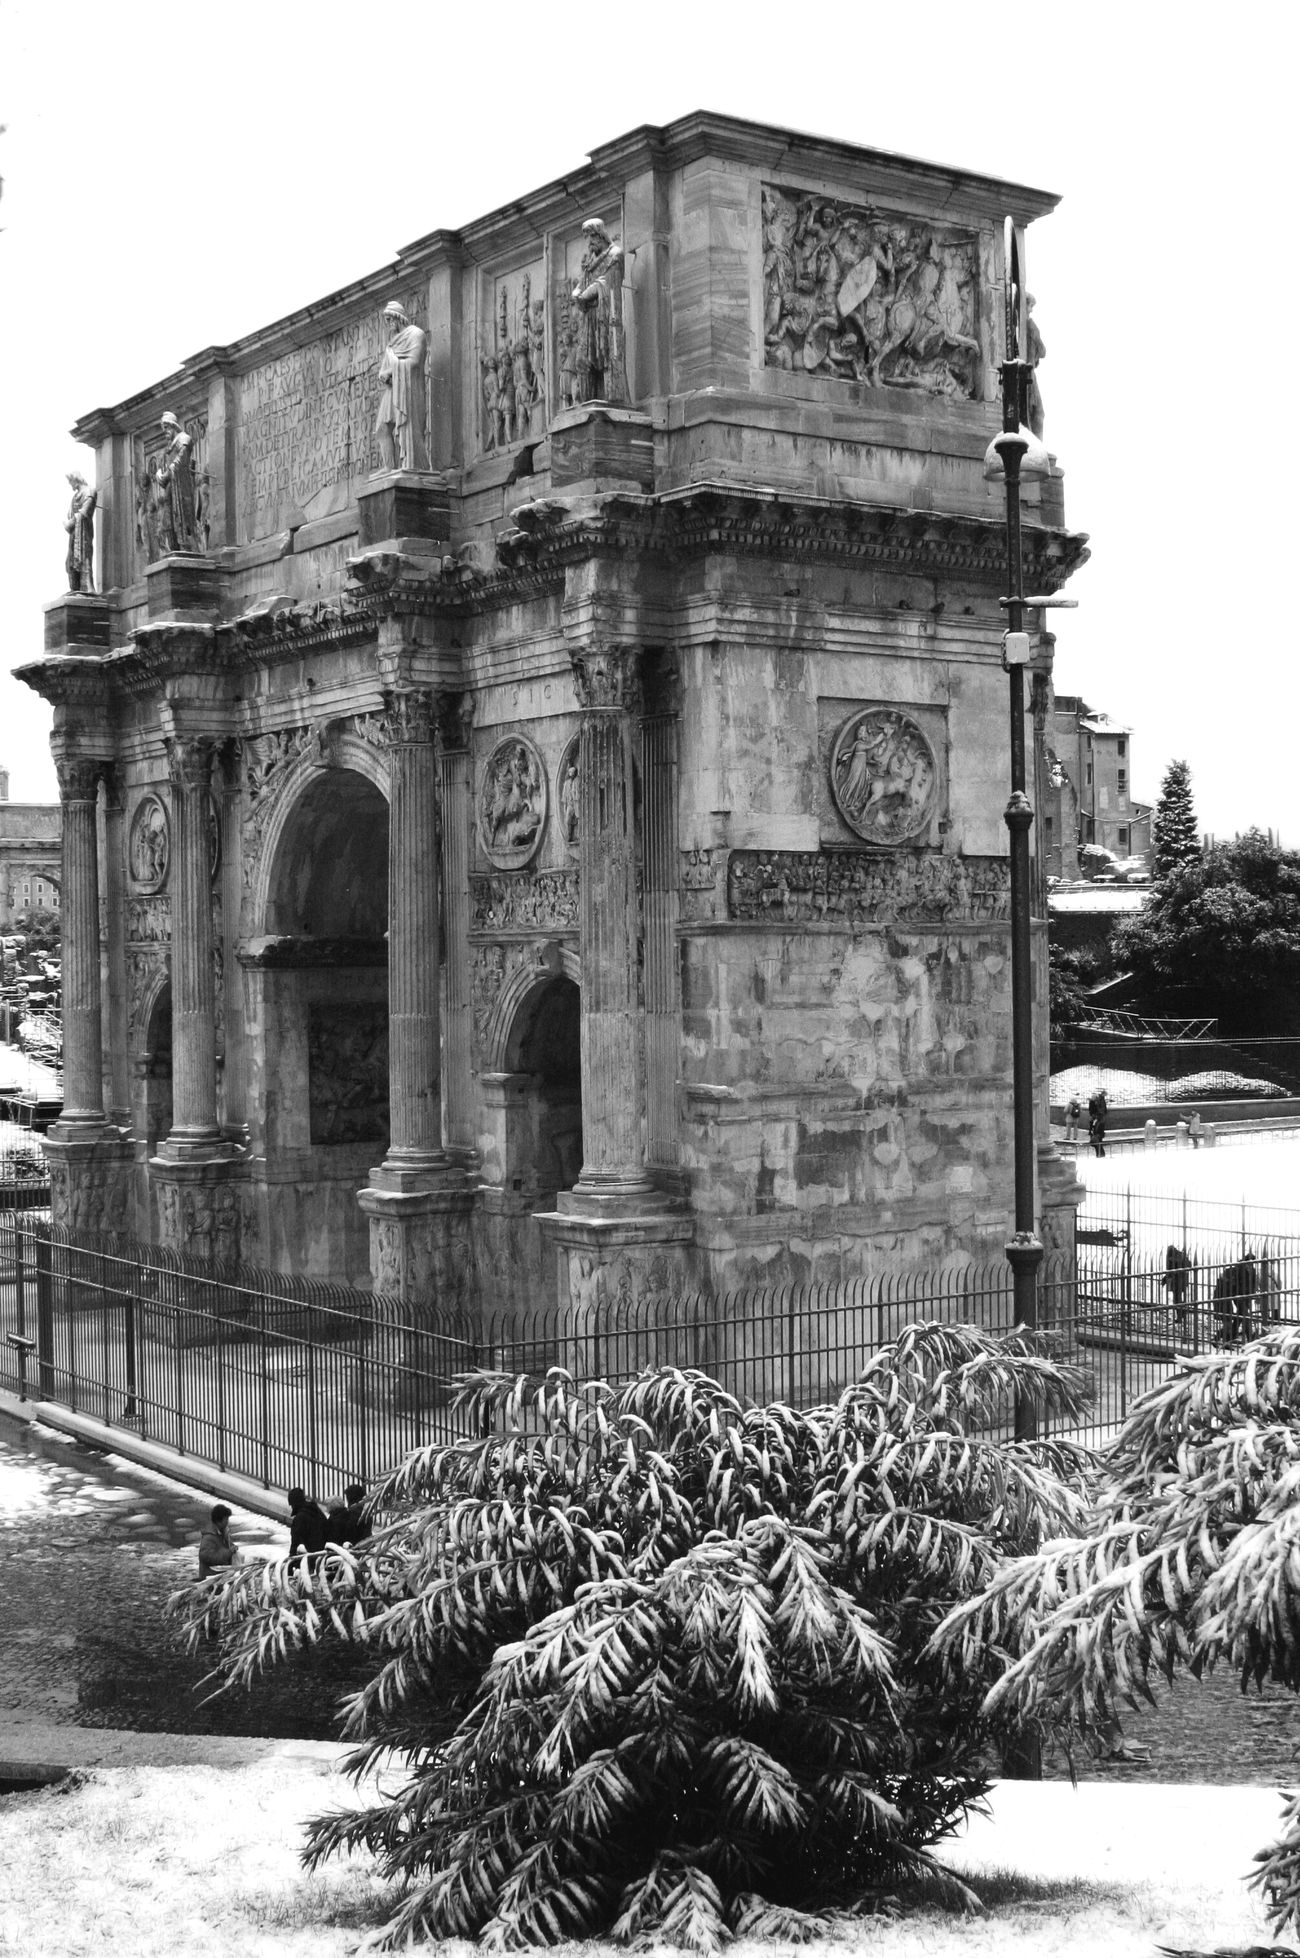 Blackandwhite Black & White Blackandwhite Photography Black And White Photography Black And White Collection  Blackwhite Biancoenero Bianco E Nero Bianco&nero Punto Di VistaBiancoeneroitalia Roma Rome Roman Ruins Roman Architecture Roman Empire Italia Italy❤️ My Point Of View Architecture Architettura Ruins Architecture_bw Arco Di Trionfo Città Eterna